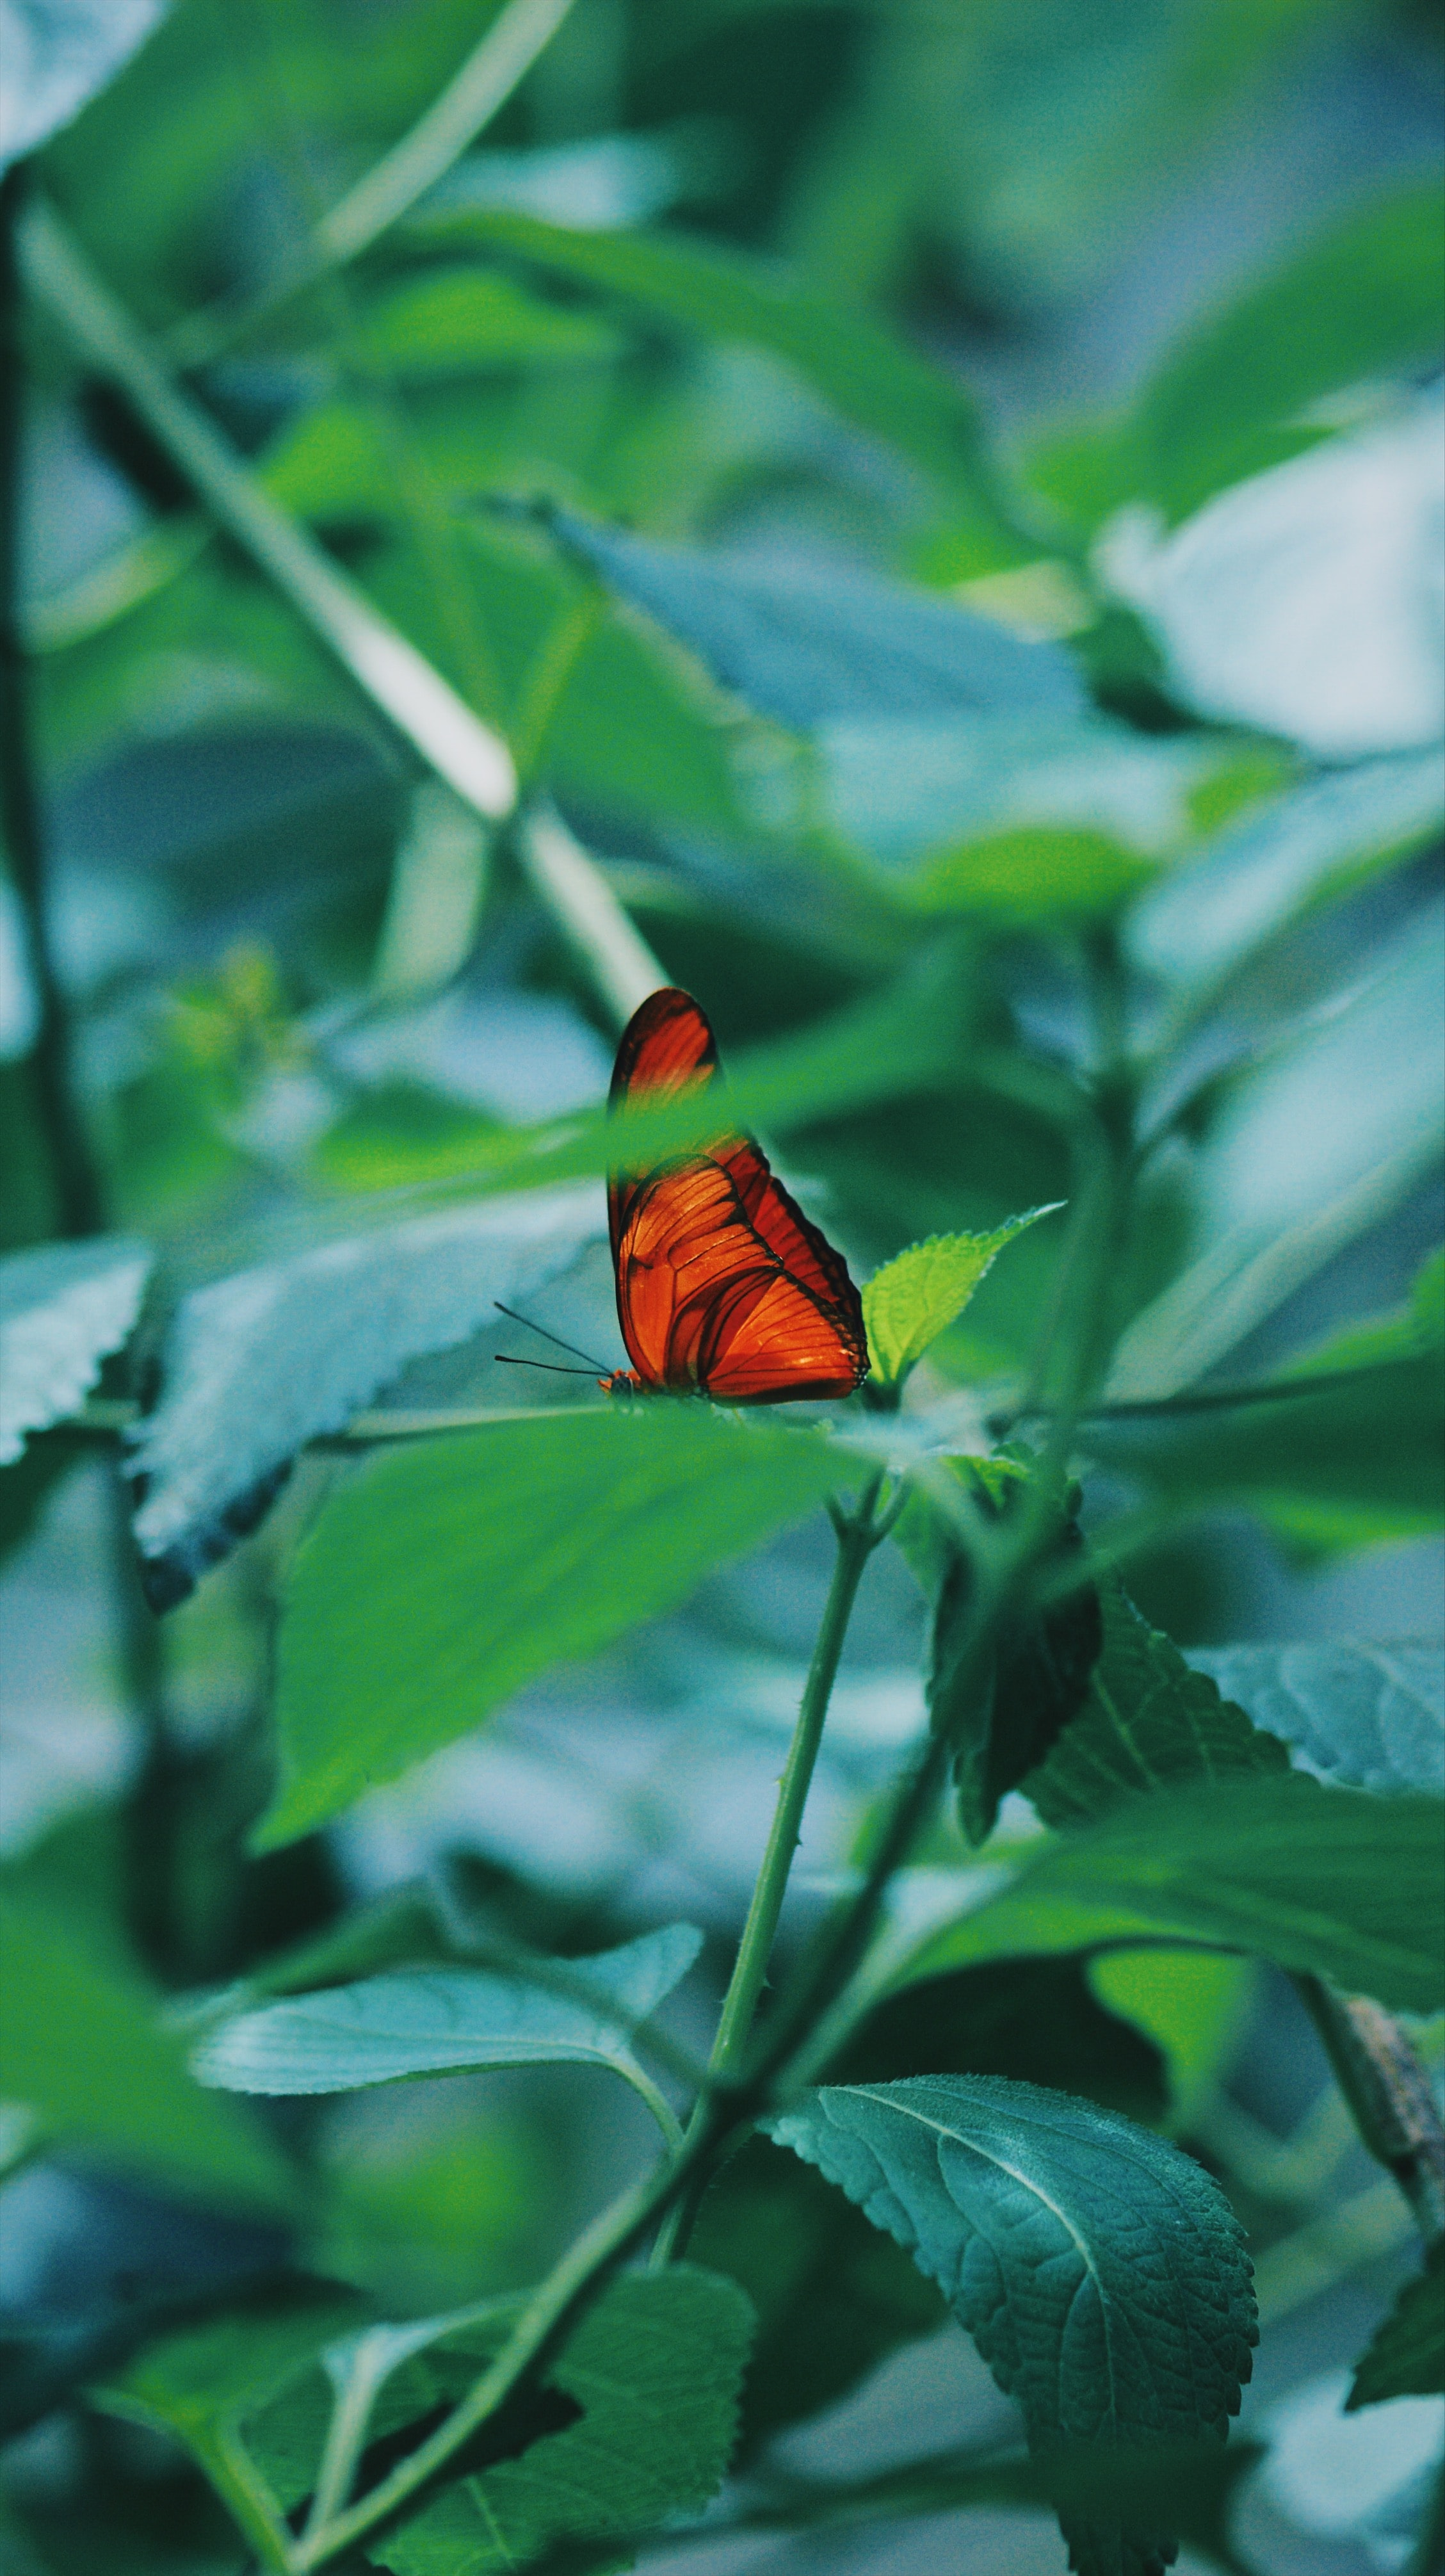 brown butterfly on green leaves